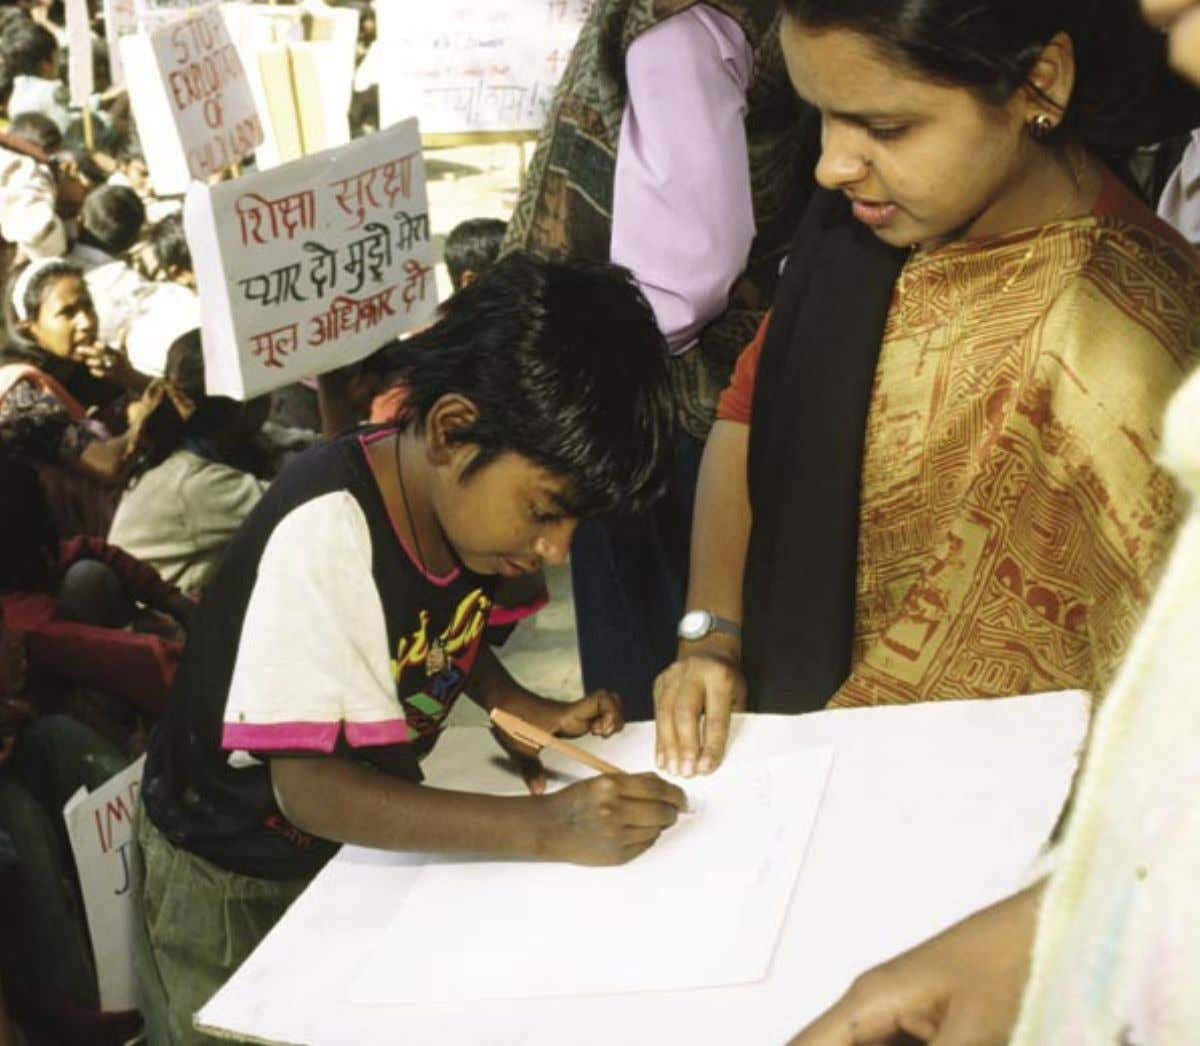 1 vi vi Children sign up to join the Bal Mazdoor children's union. Maintained by an